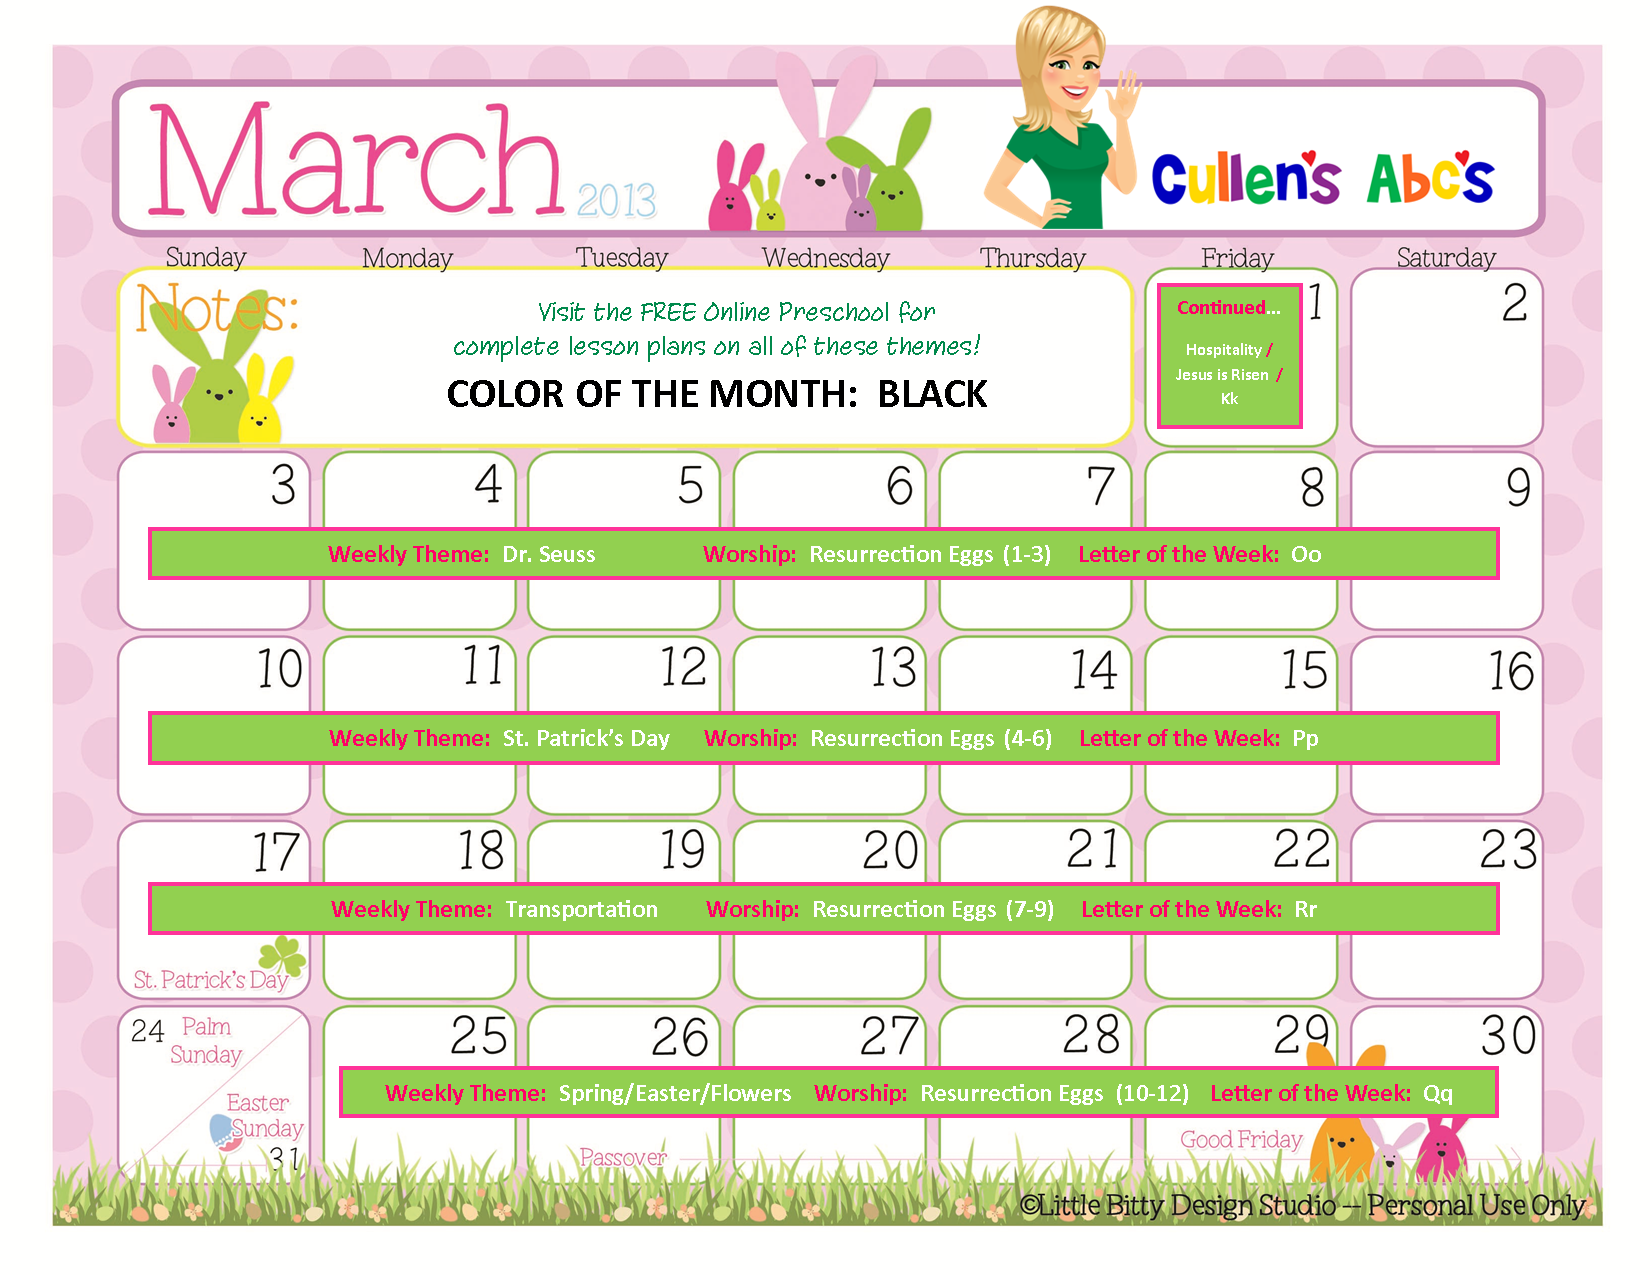 Kindergarten Calendar Games : Preschool calendars online and children s